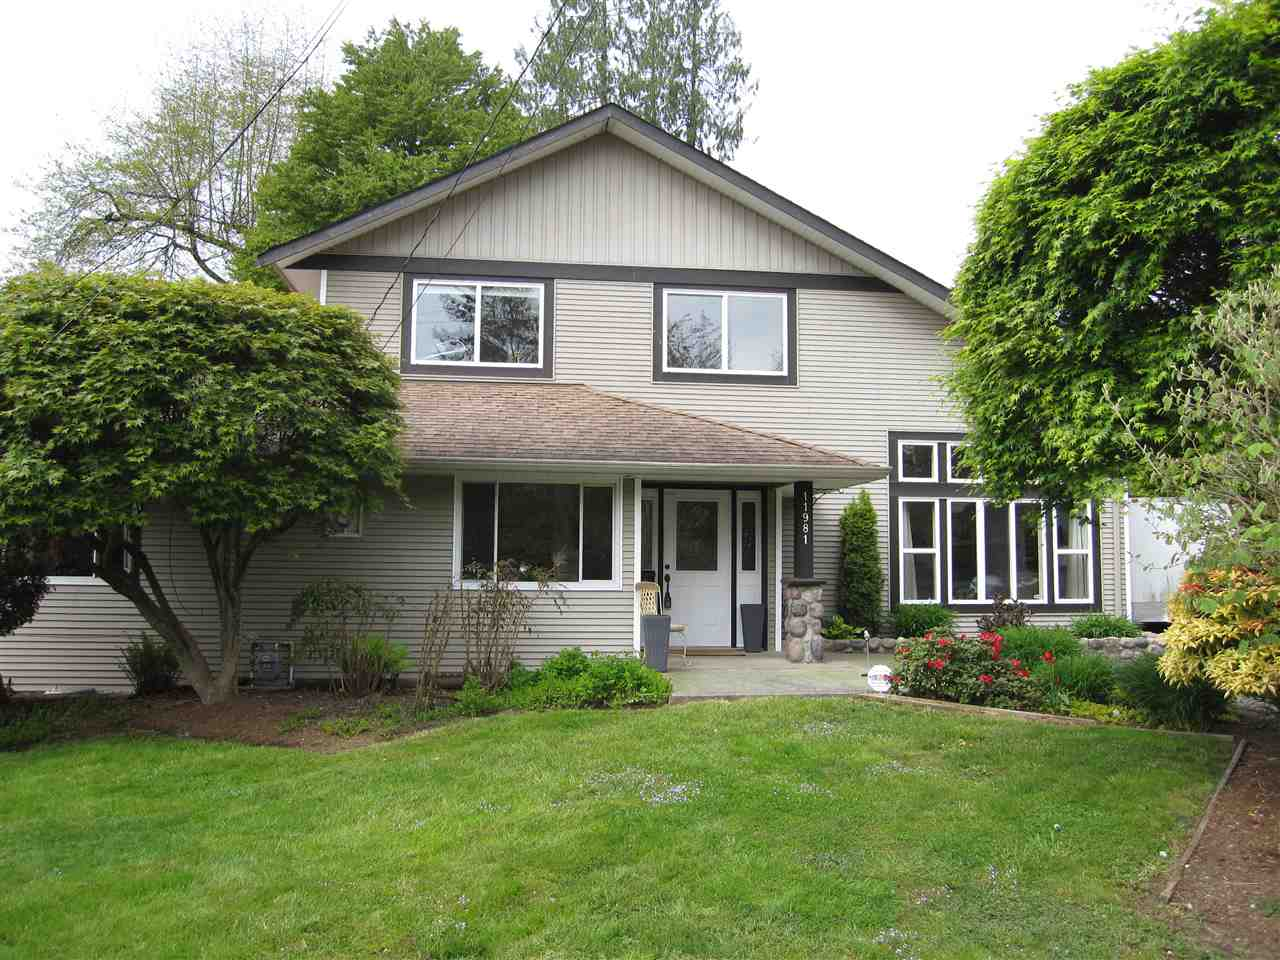 Main Photo: 11981 248 Street in Maple Ridge: Cottonwood MR House for sale : MLS® # R2165177